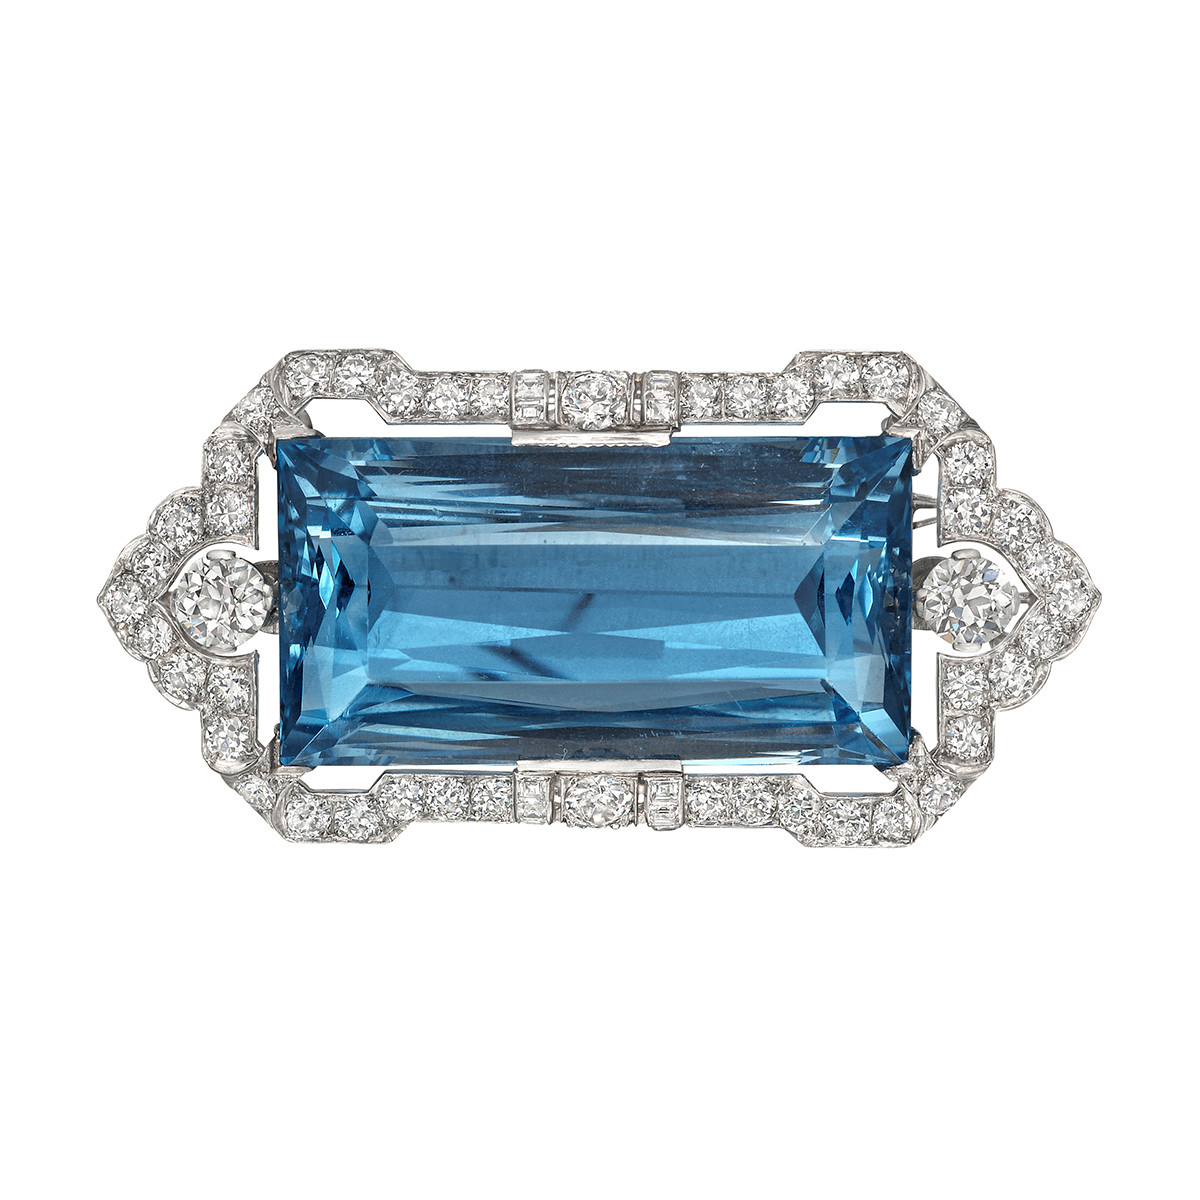 Hennell 52ct Emerald-Cut Aquamarine & Diamond Pin